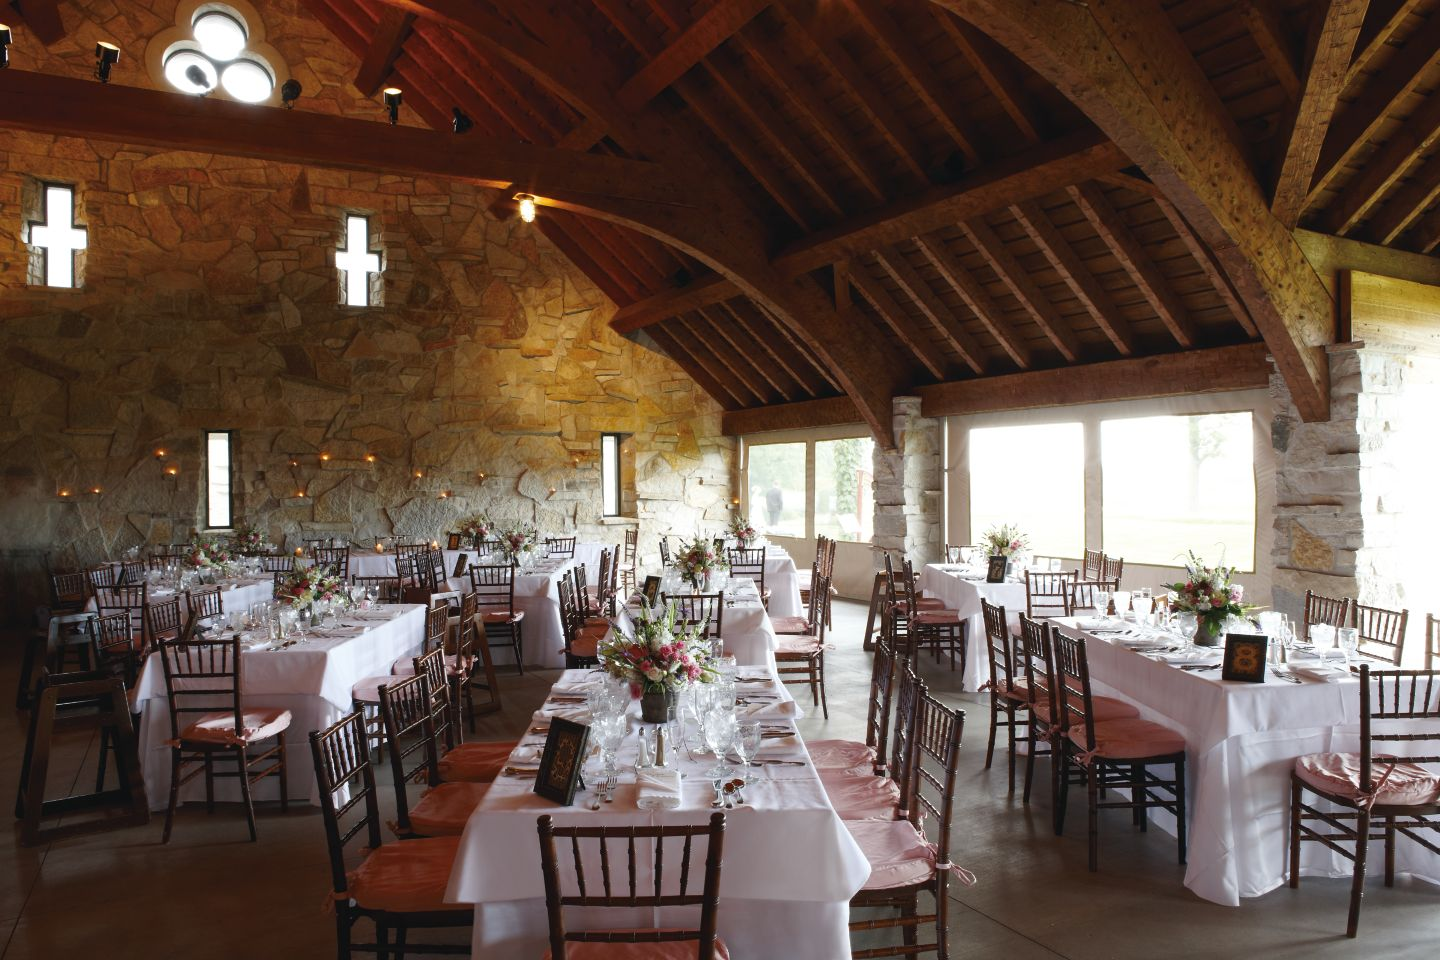 Tables with place settings in the Irish Barn